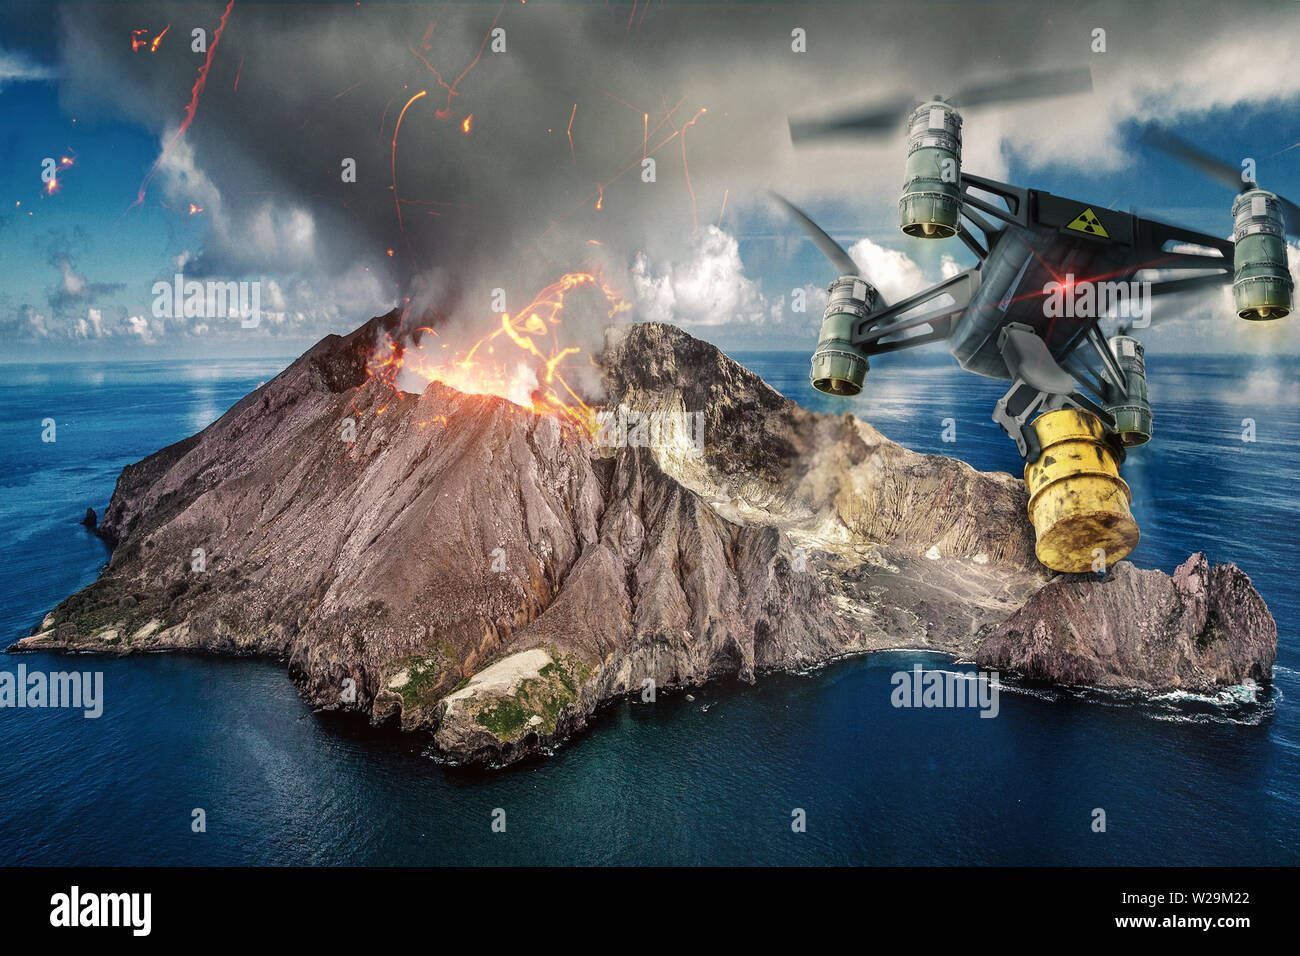 a drone transports its dangerous cargo to a volcano - 3D-Illustration - Stock Image